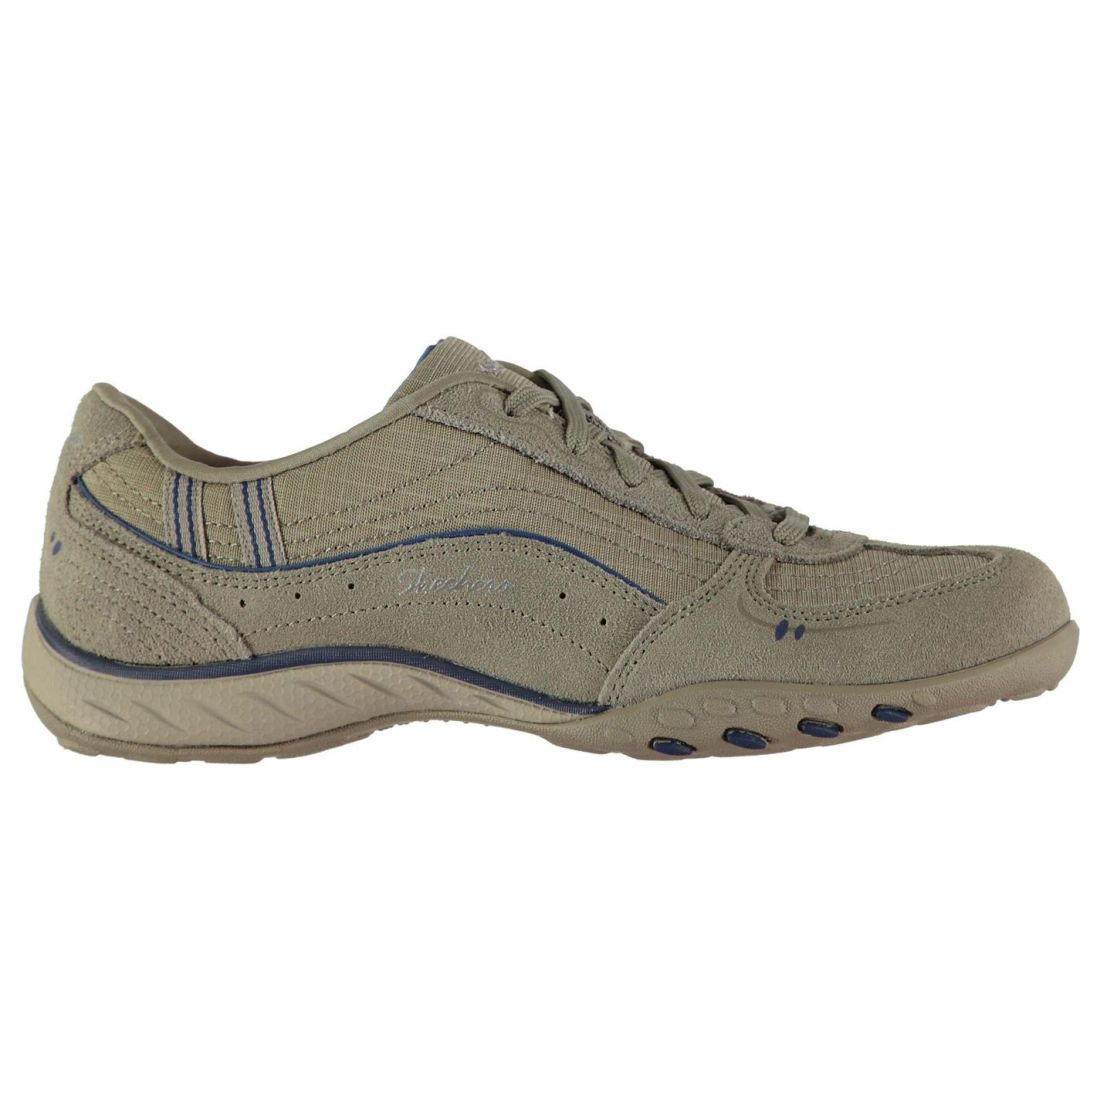 Skechers Act Just Relax Womens Shoes Overlay Laces Fastened Footwear | eBay